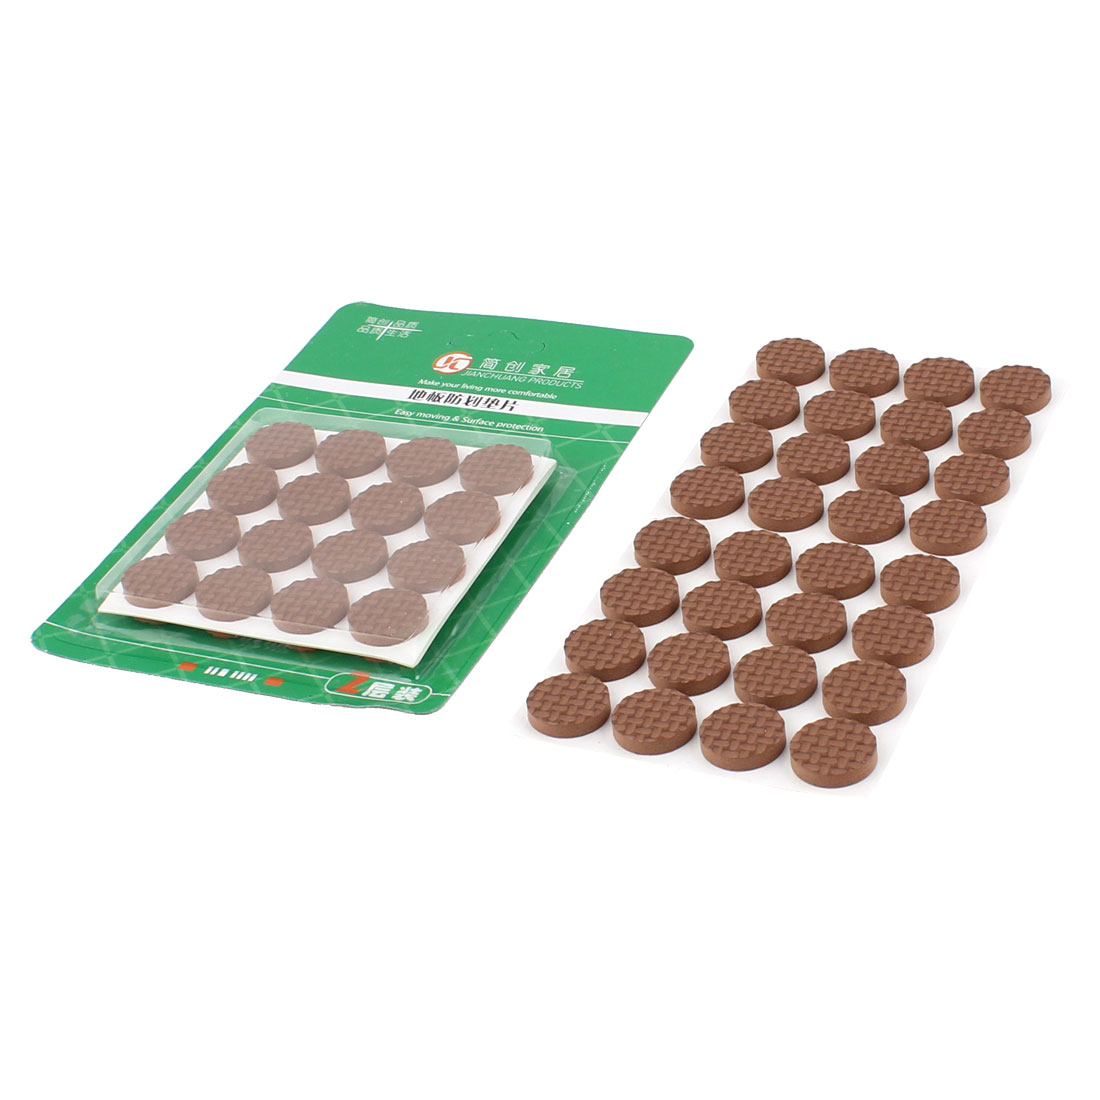 Table EVA Round Anti Scratch Furniture Feet Pads Covers Brown 18mm Dia 64pcs - image 1 of 1